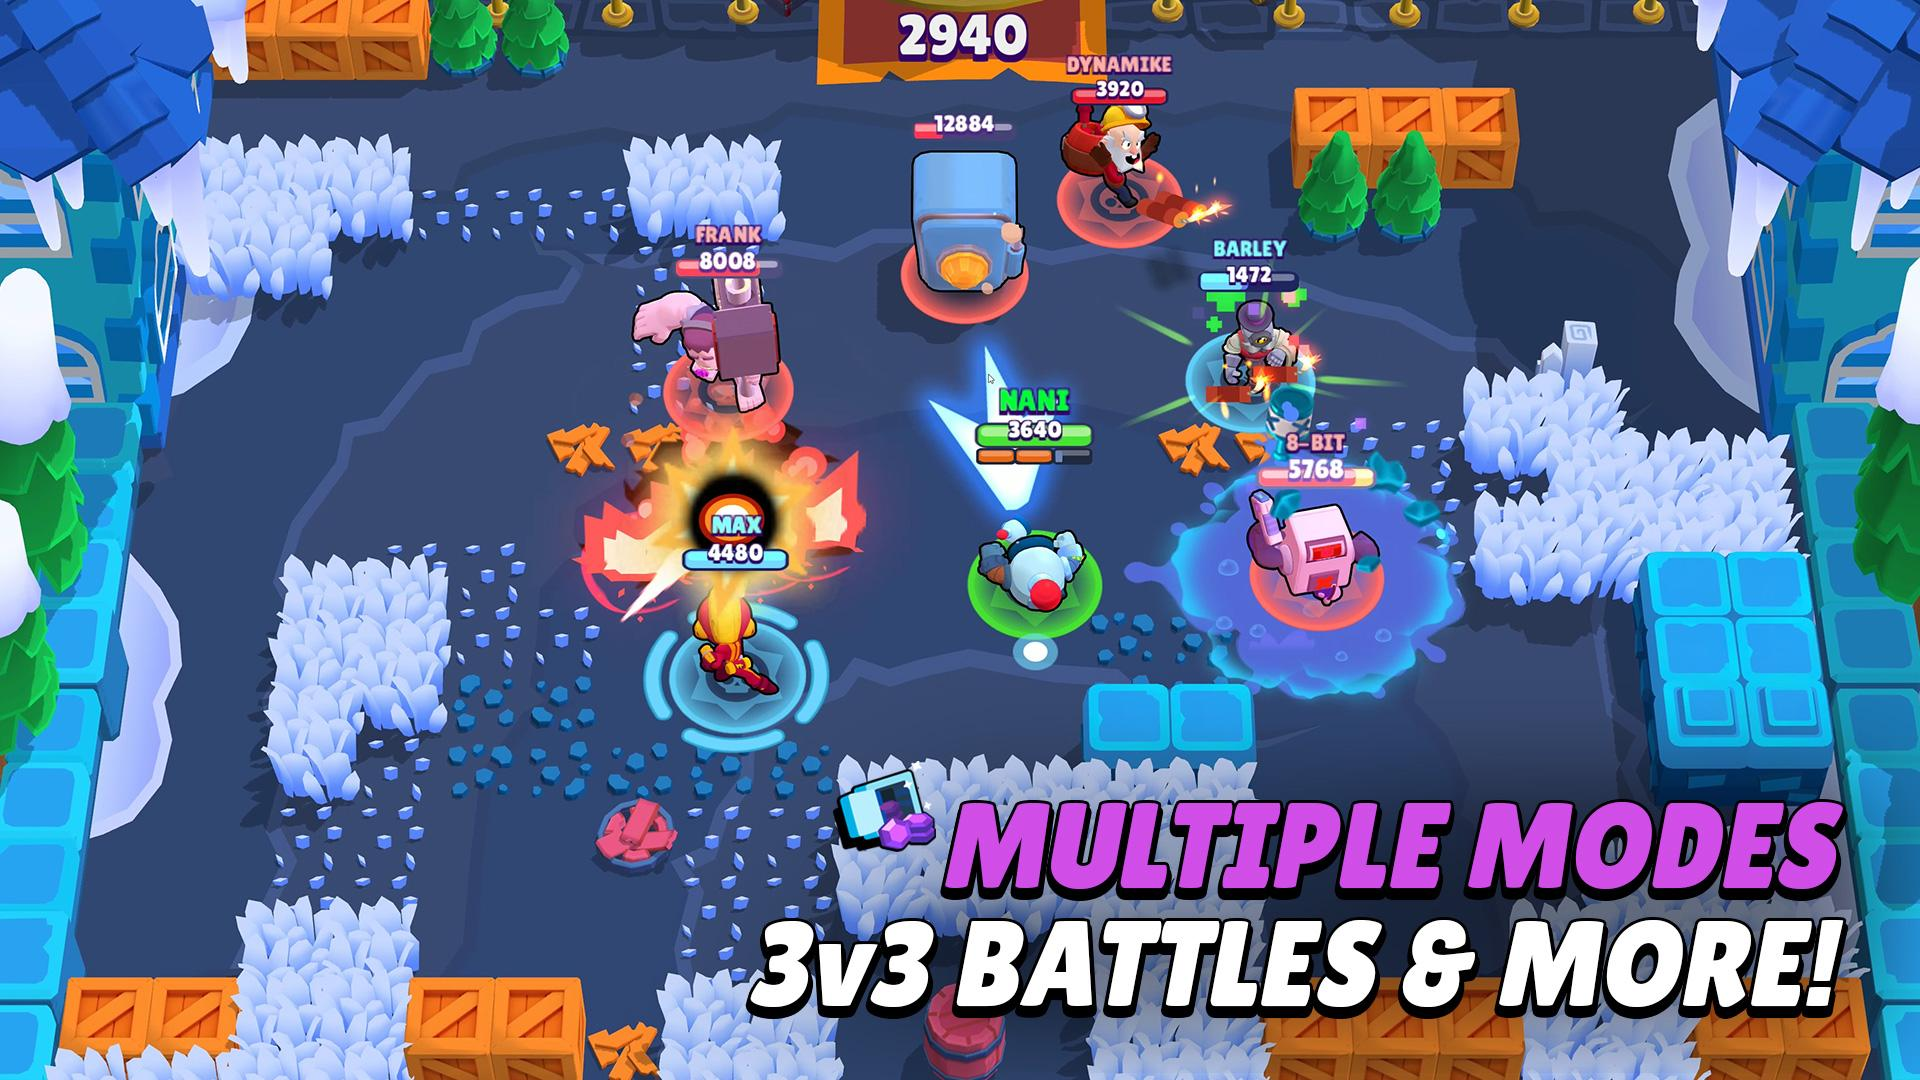 Download Brawl Stars Apk For Android 1